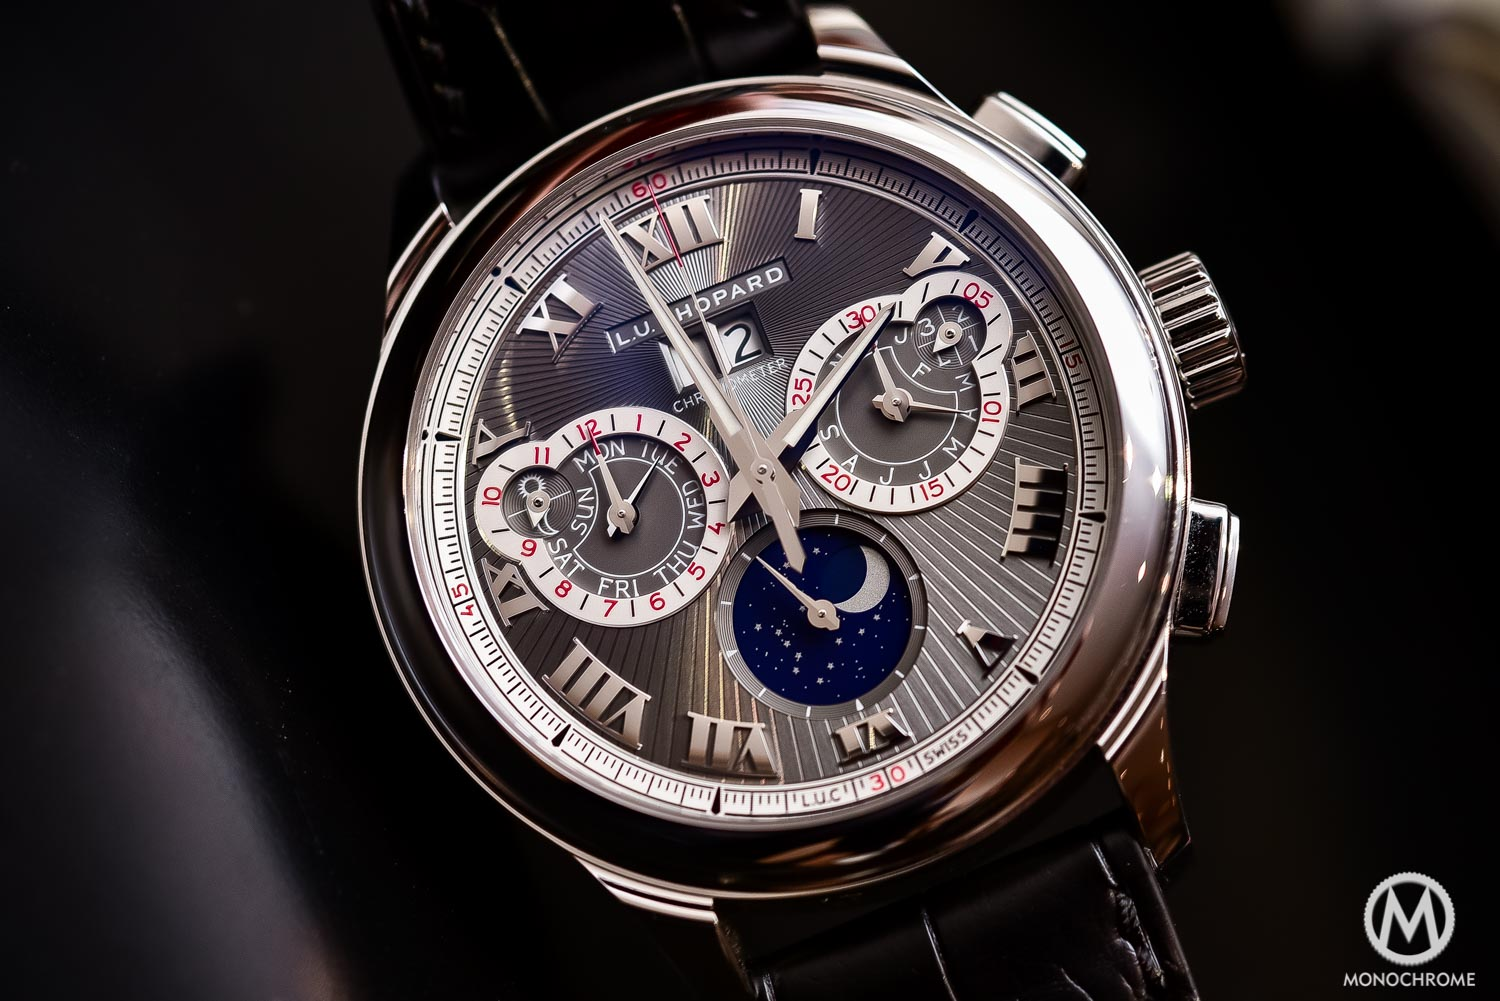 Chopard L.U.C Perpetual Chrono Fairmined white gold - Baselworld 2016 - 1